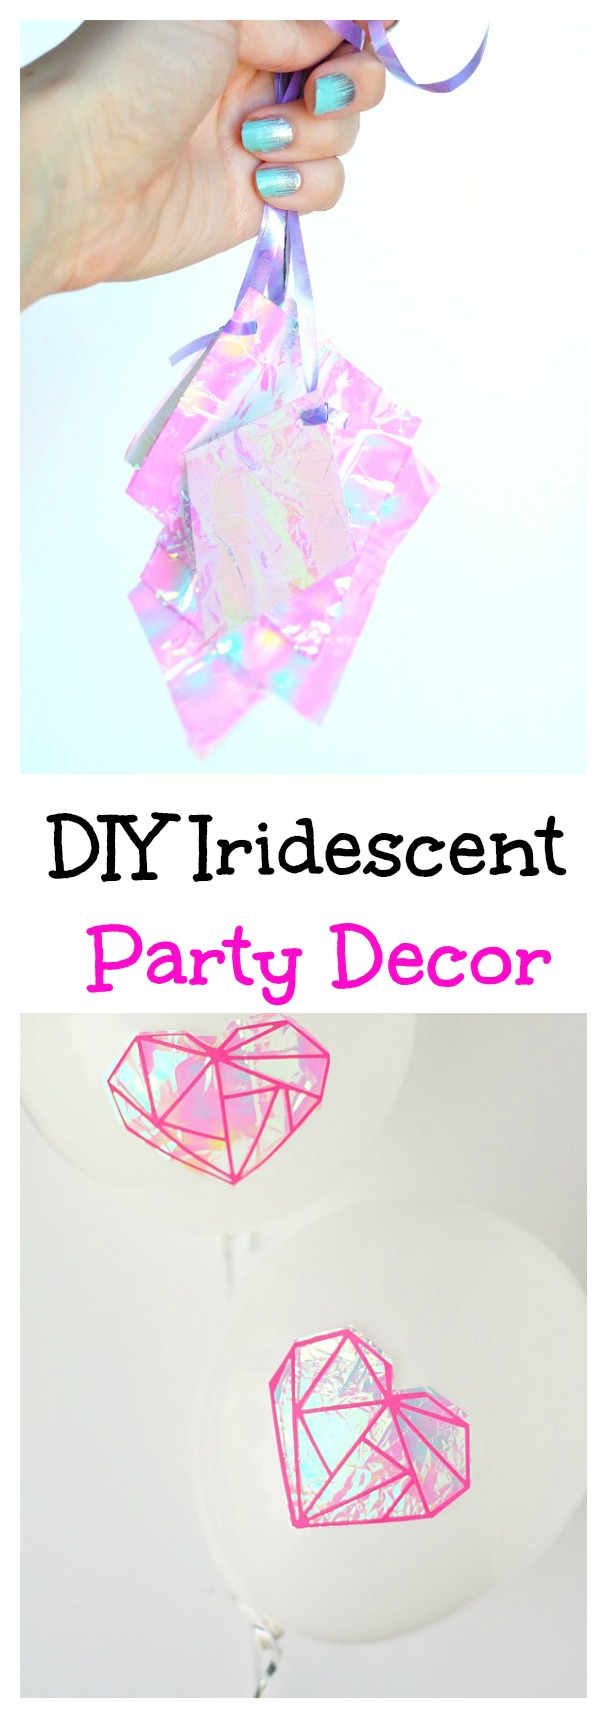 DIY Iridescent Party Decor